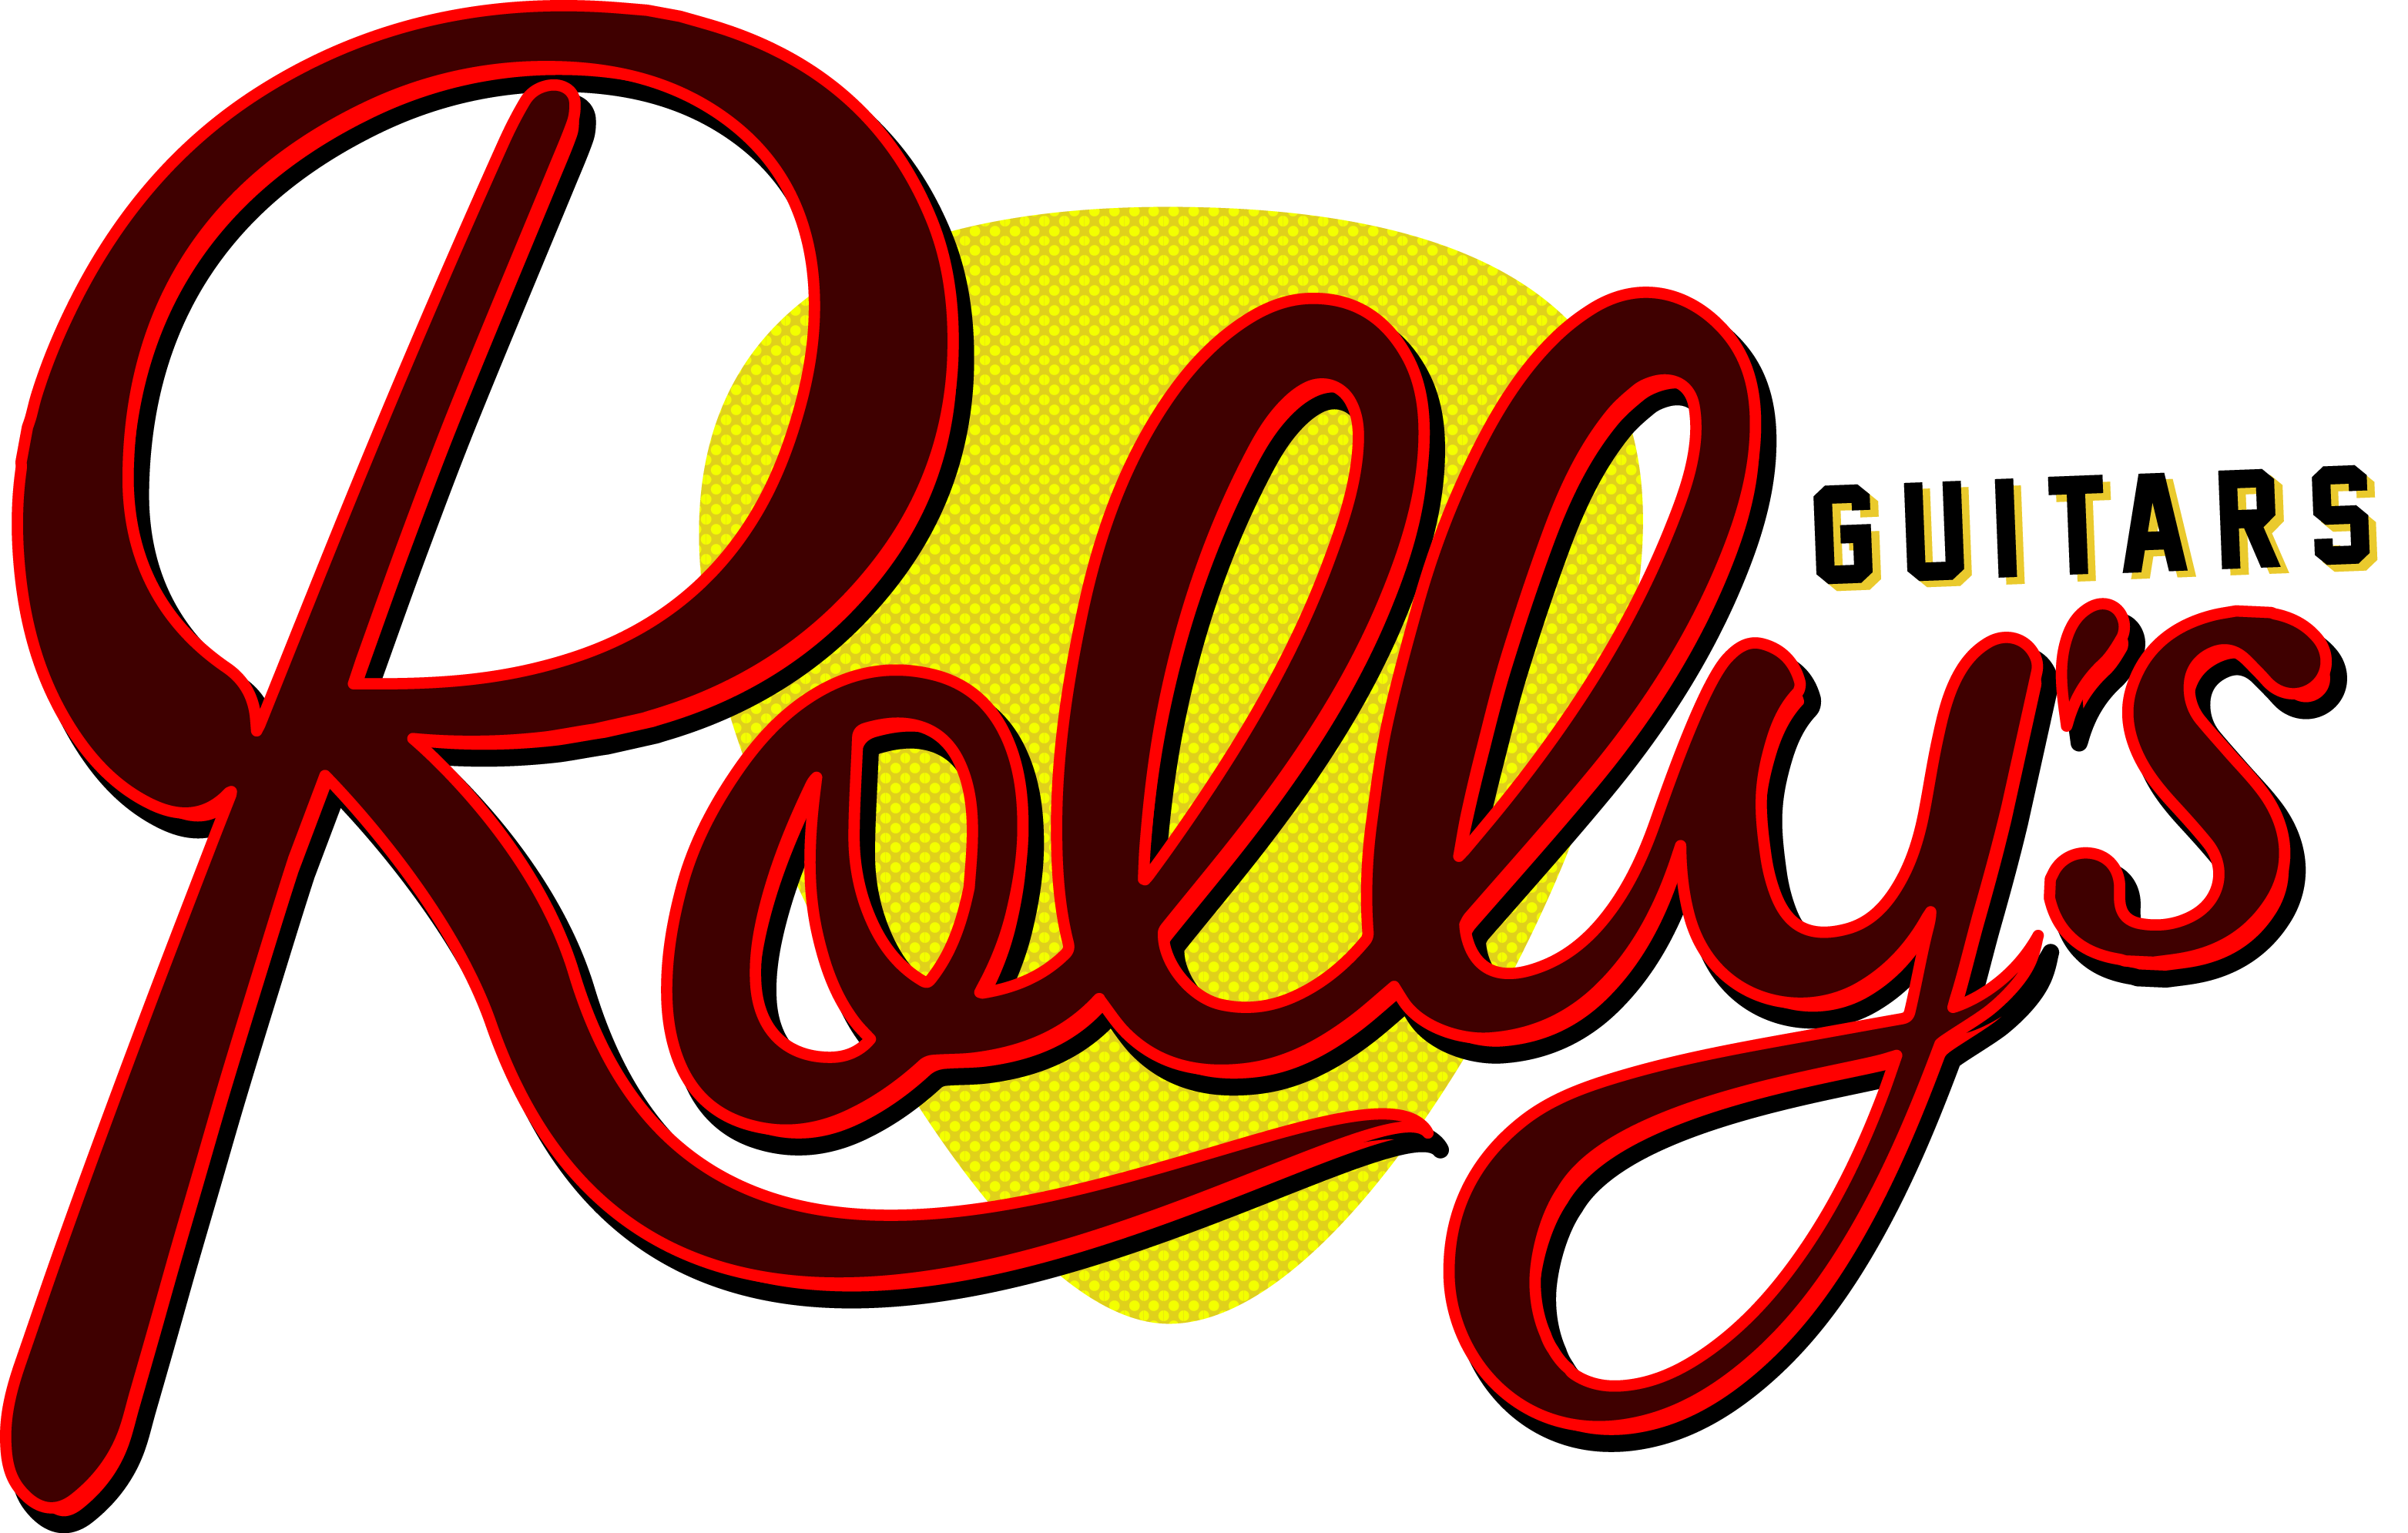 Rolly's Guitars